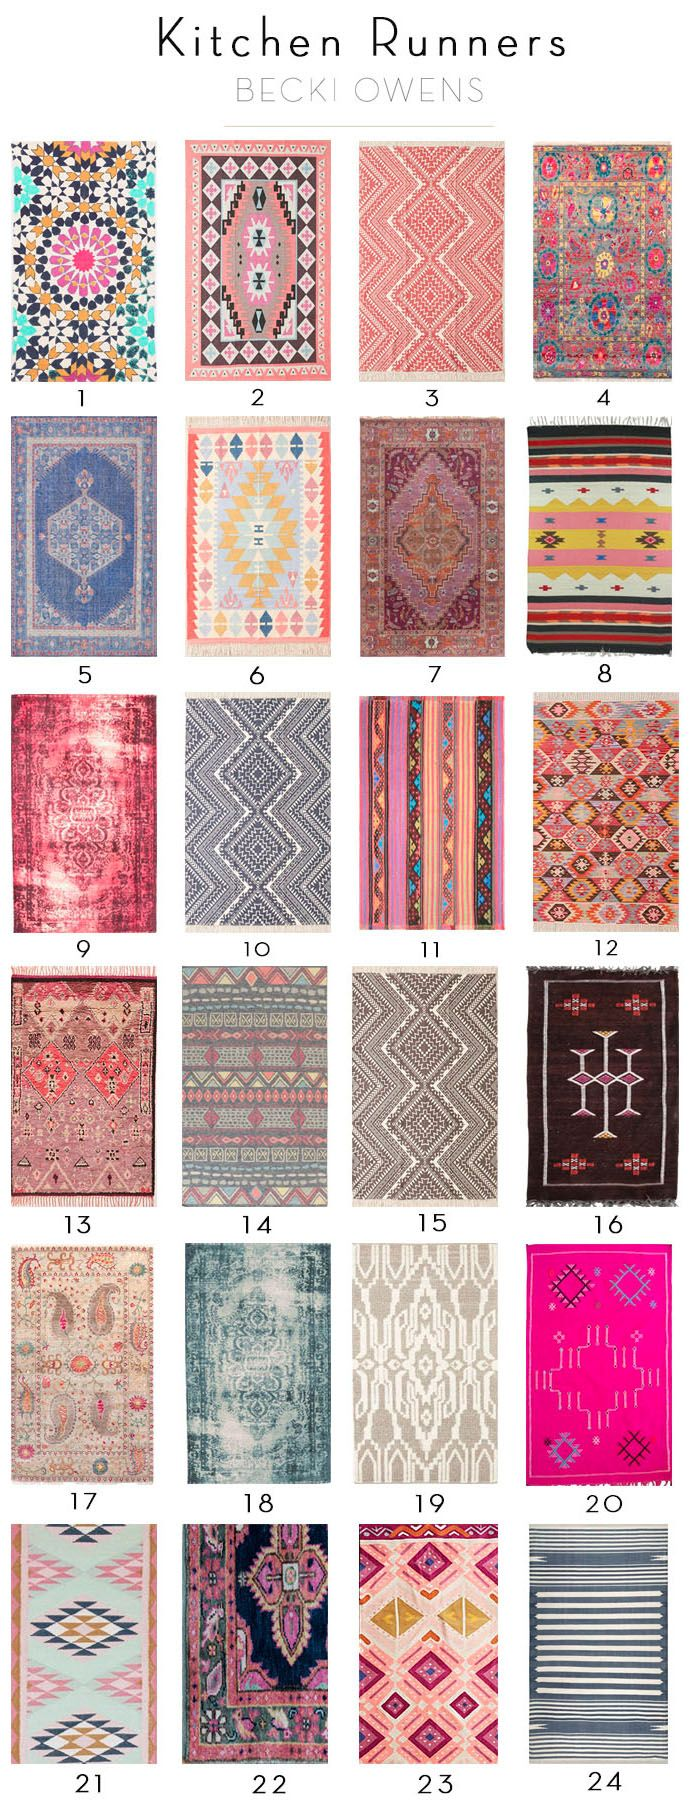 Rugs home decor kitchen runners becki owens decor for International home decor rugs